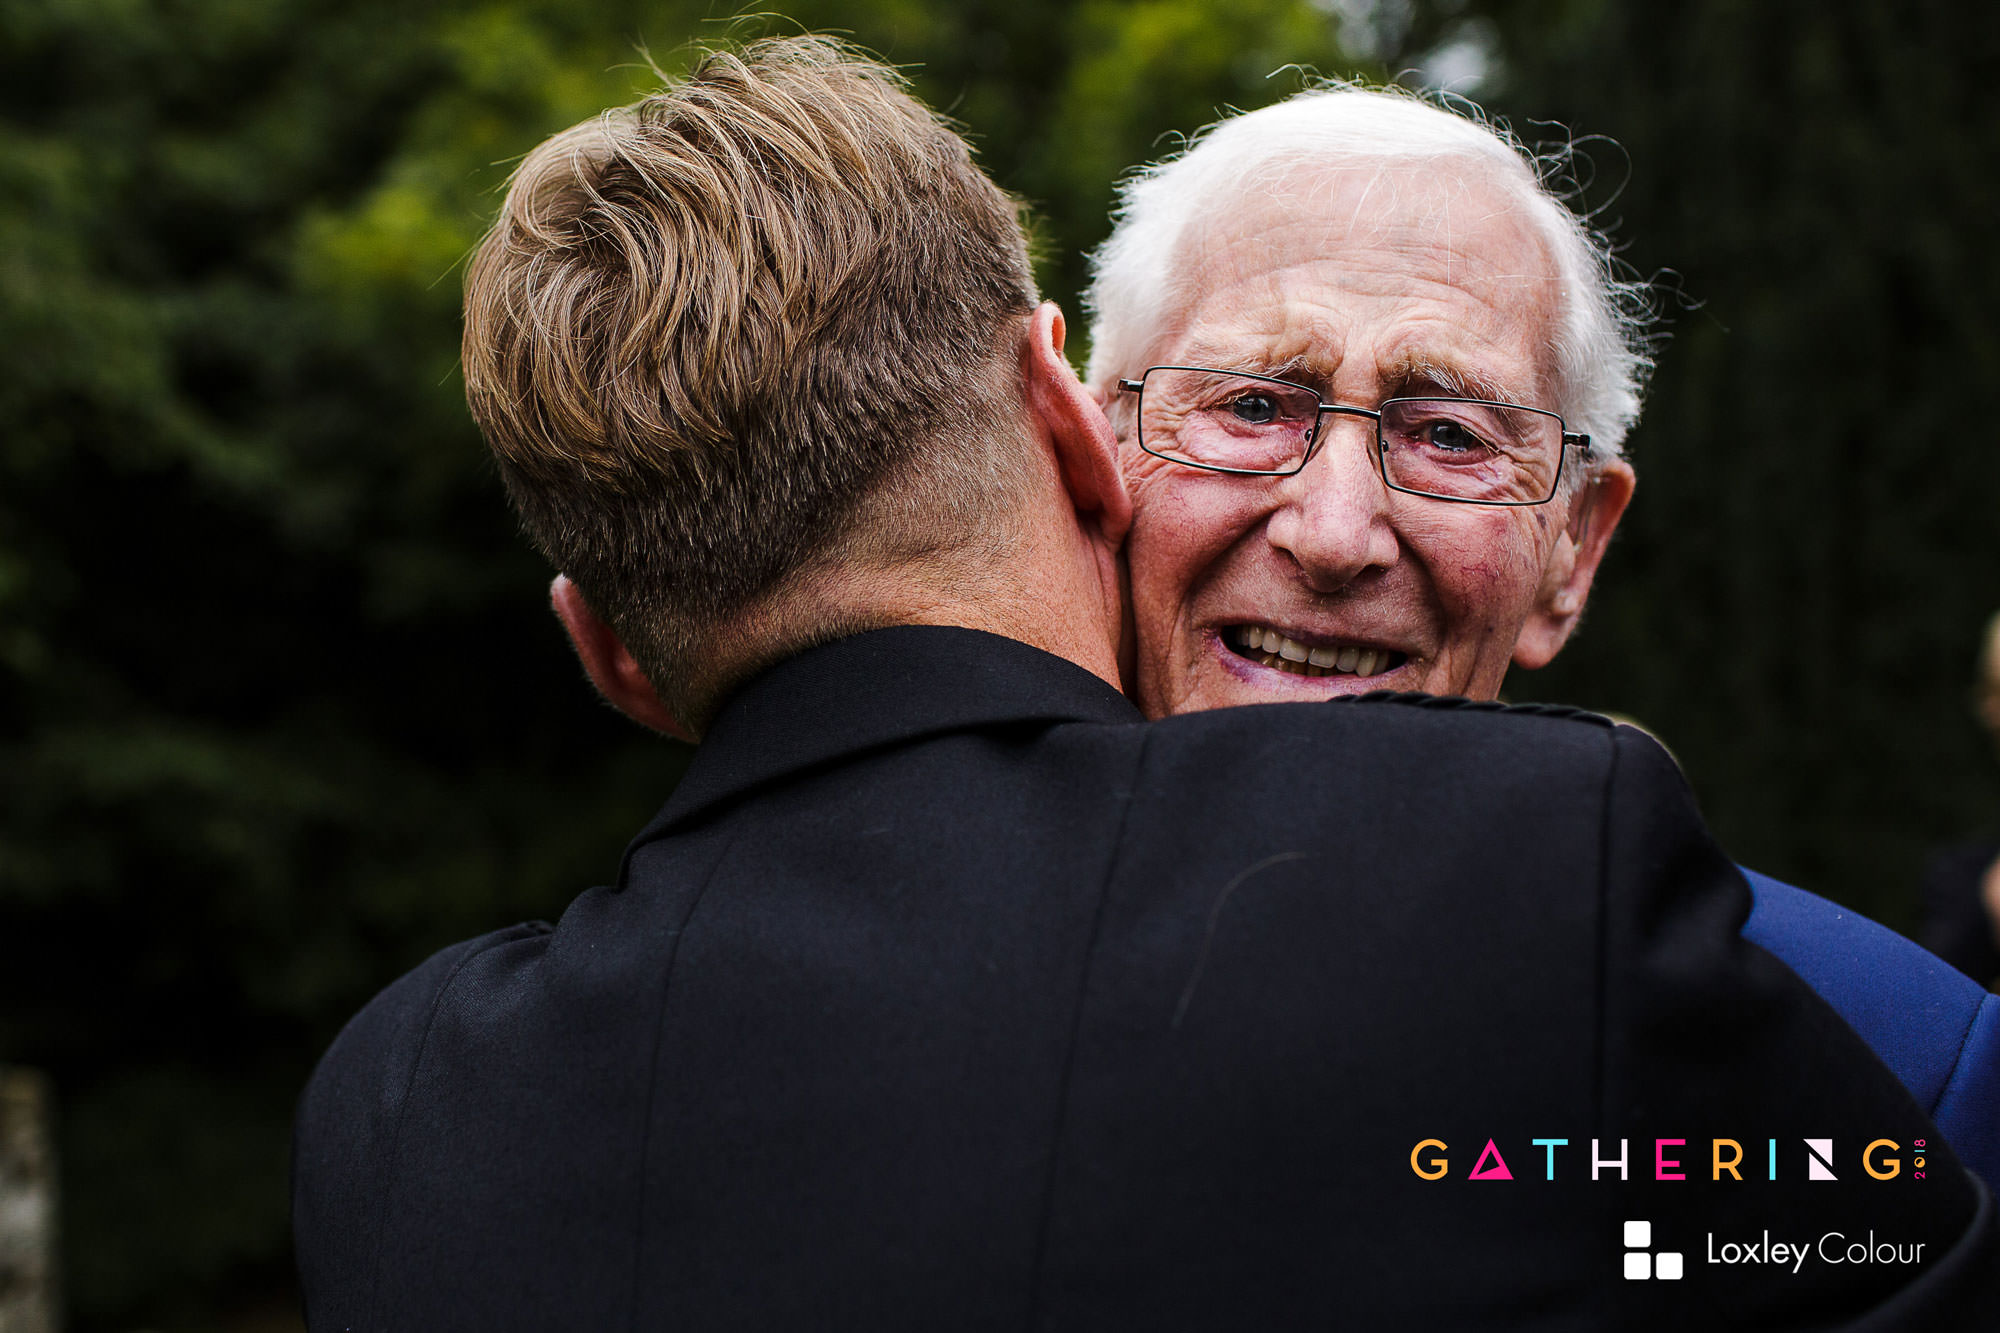 NineDots Gathering Print Competition 2018 sponsored by Loxley Colour - The Ultimate Wedding Photography Conference